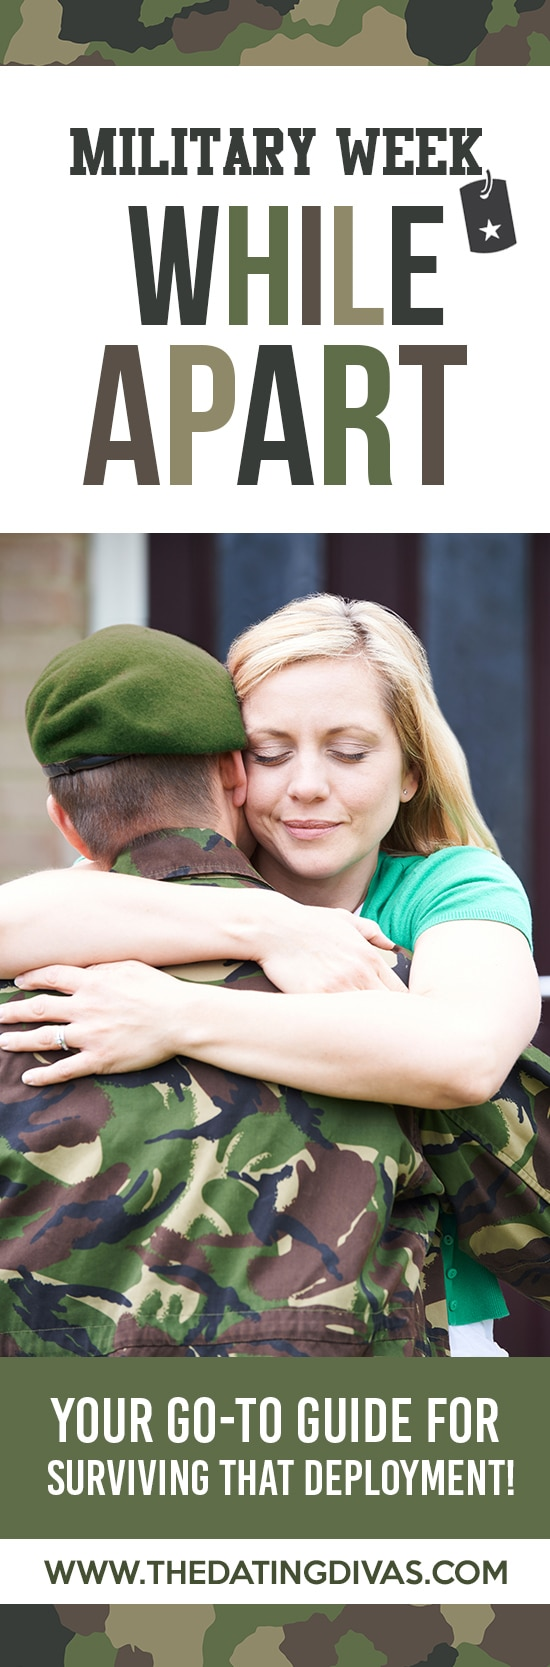 Deployment Guide for Military Spouses